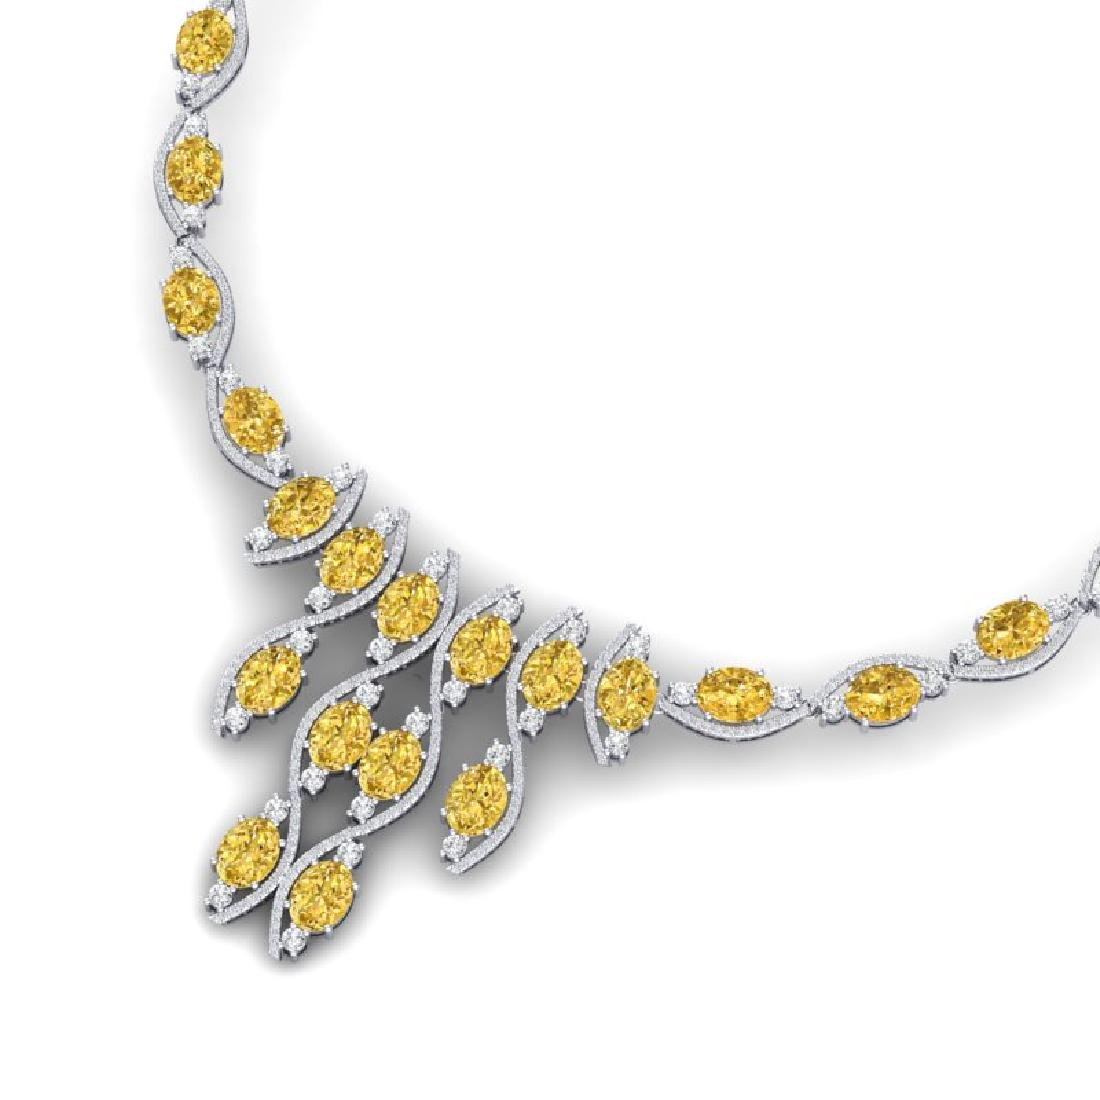 64.04 CTW Royalty Canary Citrine & VS Diamond Necklace